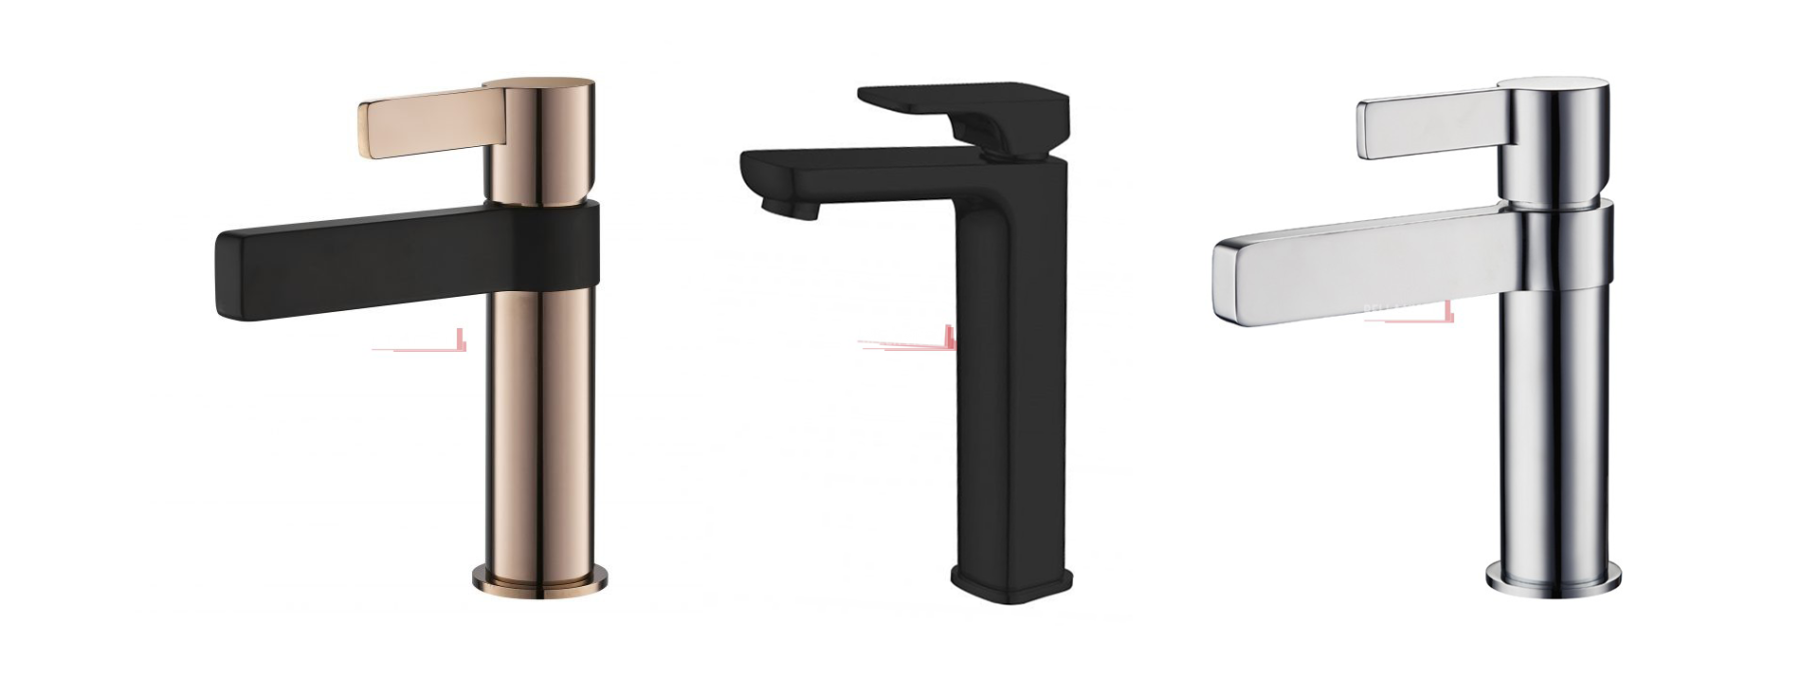 Trendy tapware in rose gold, black, and chrome finish